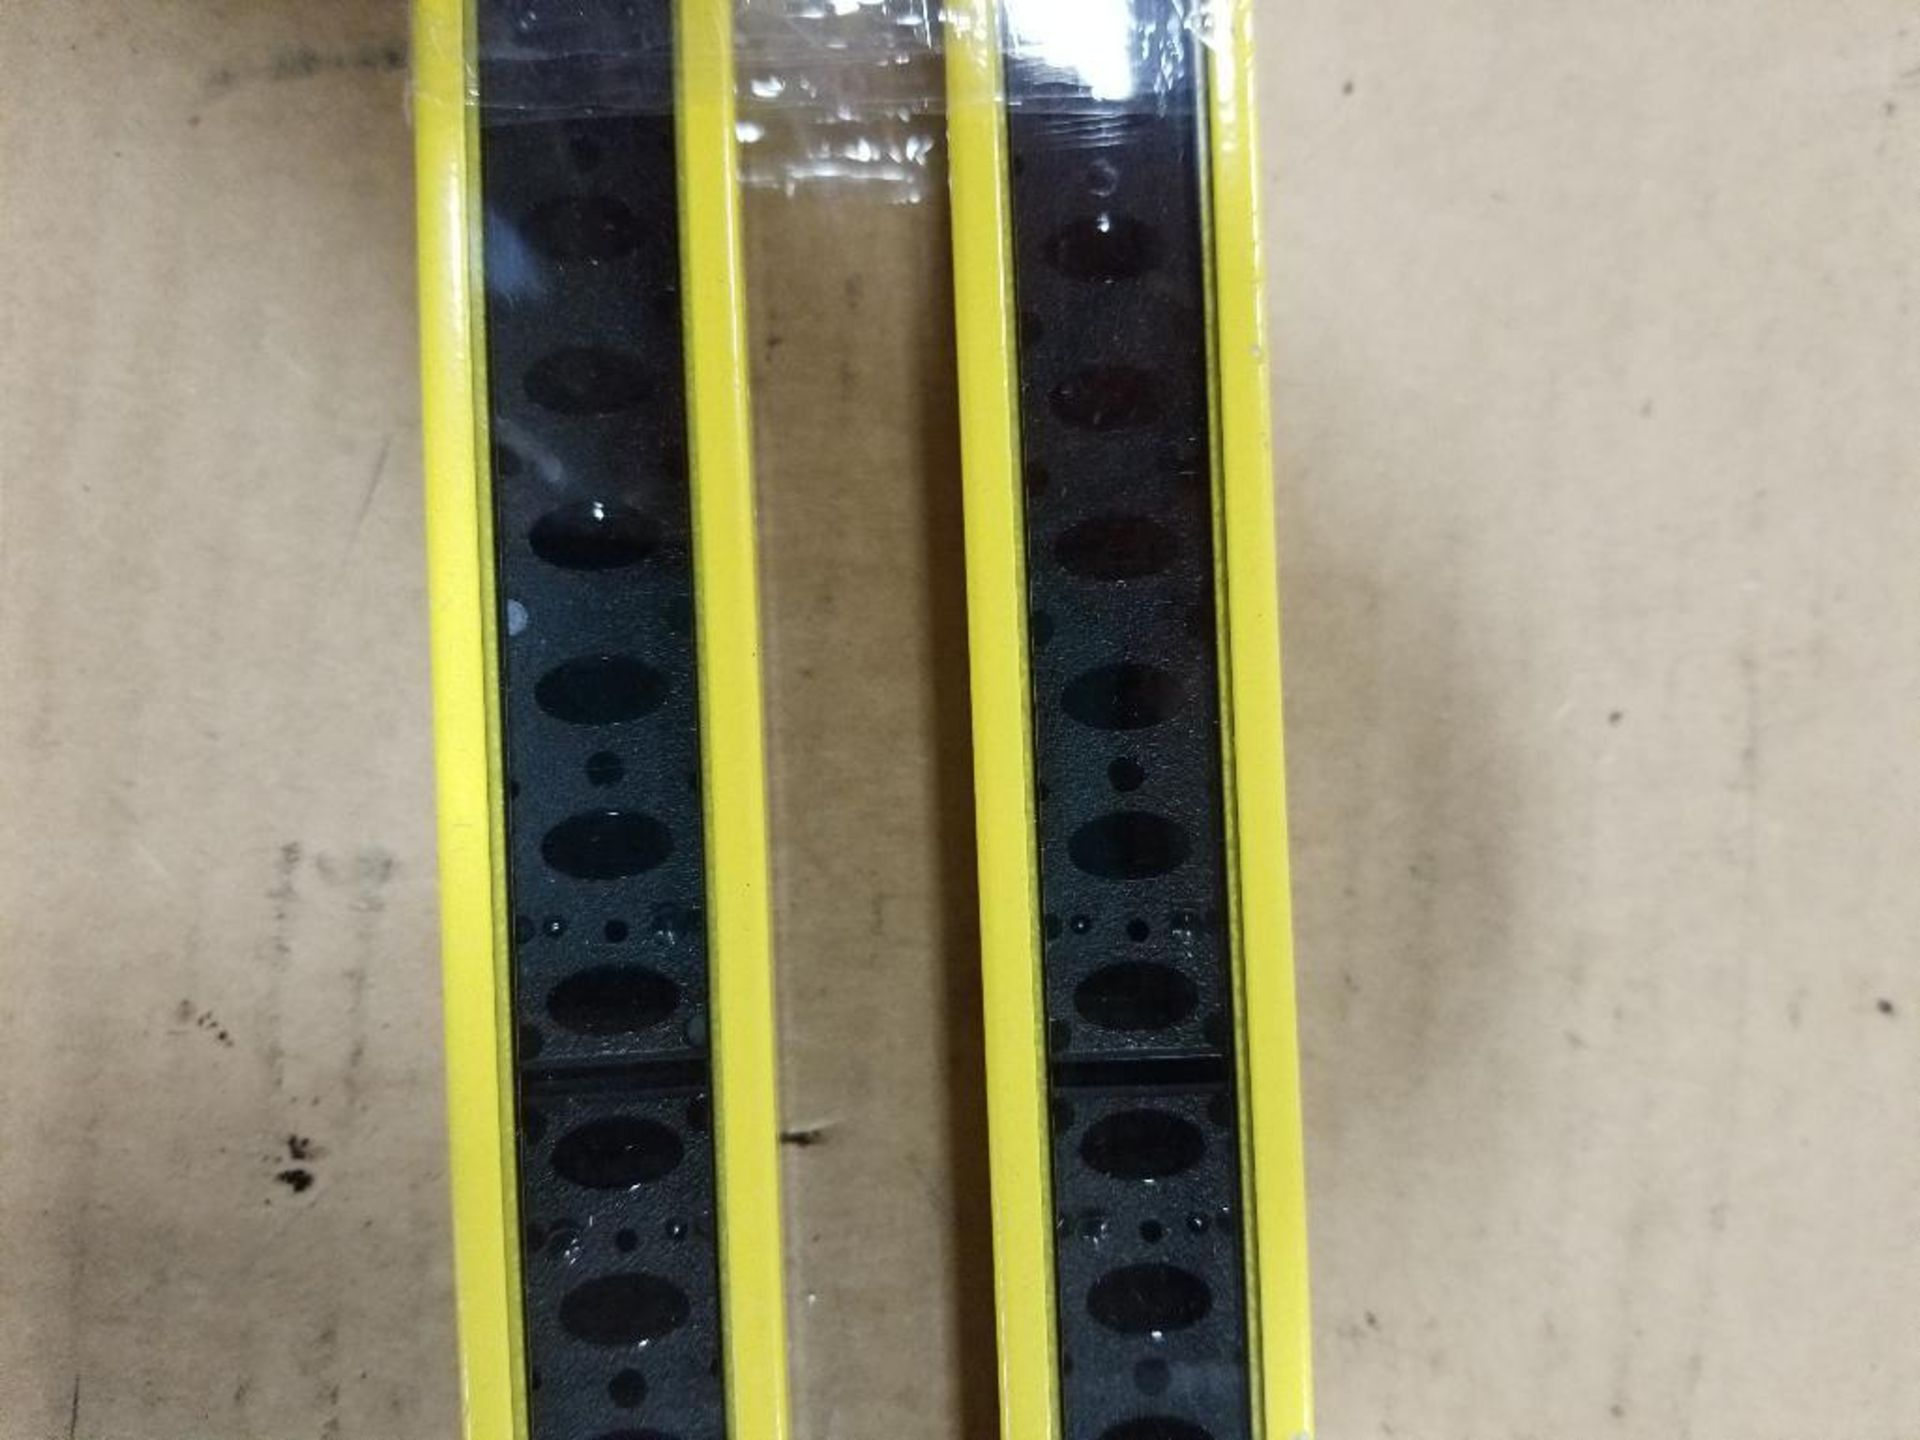 Banner Micro-Screen Light curtain transmitter / receiver set. USR3624YP2, USE3624YP2. - Image 4 of 5